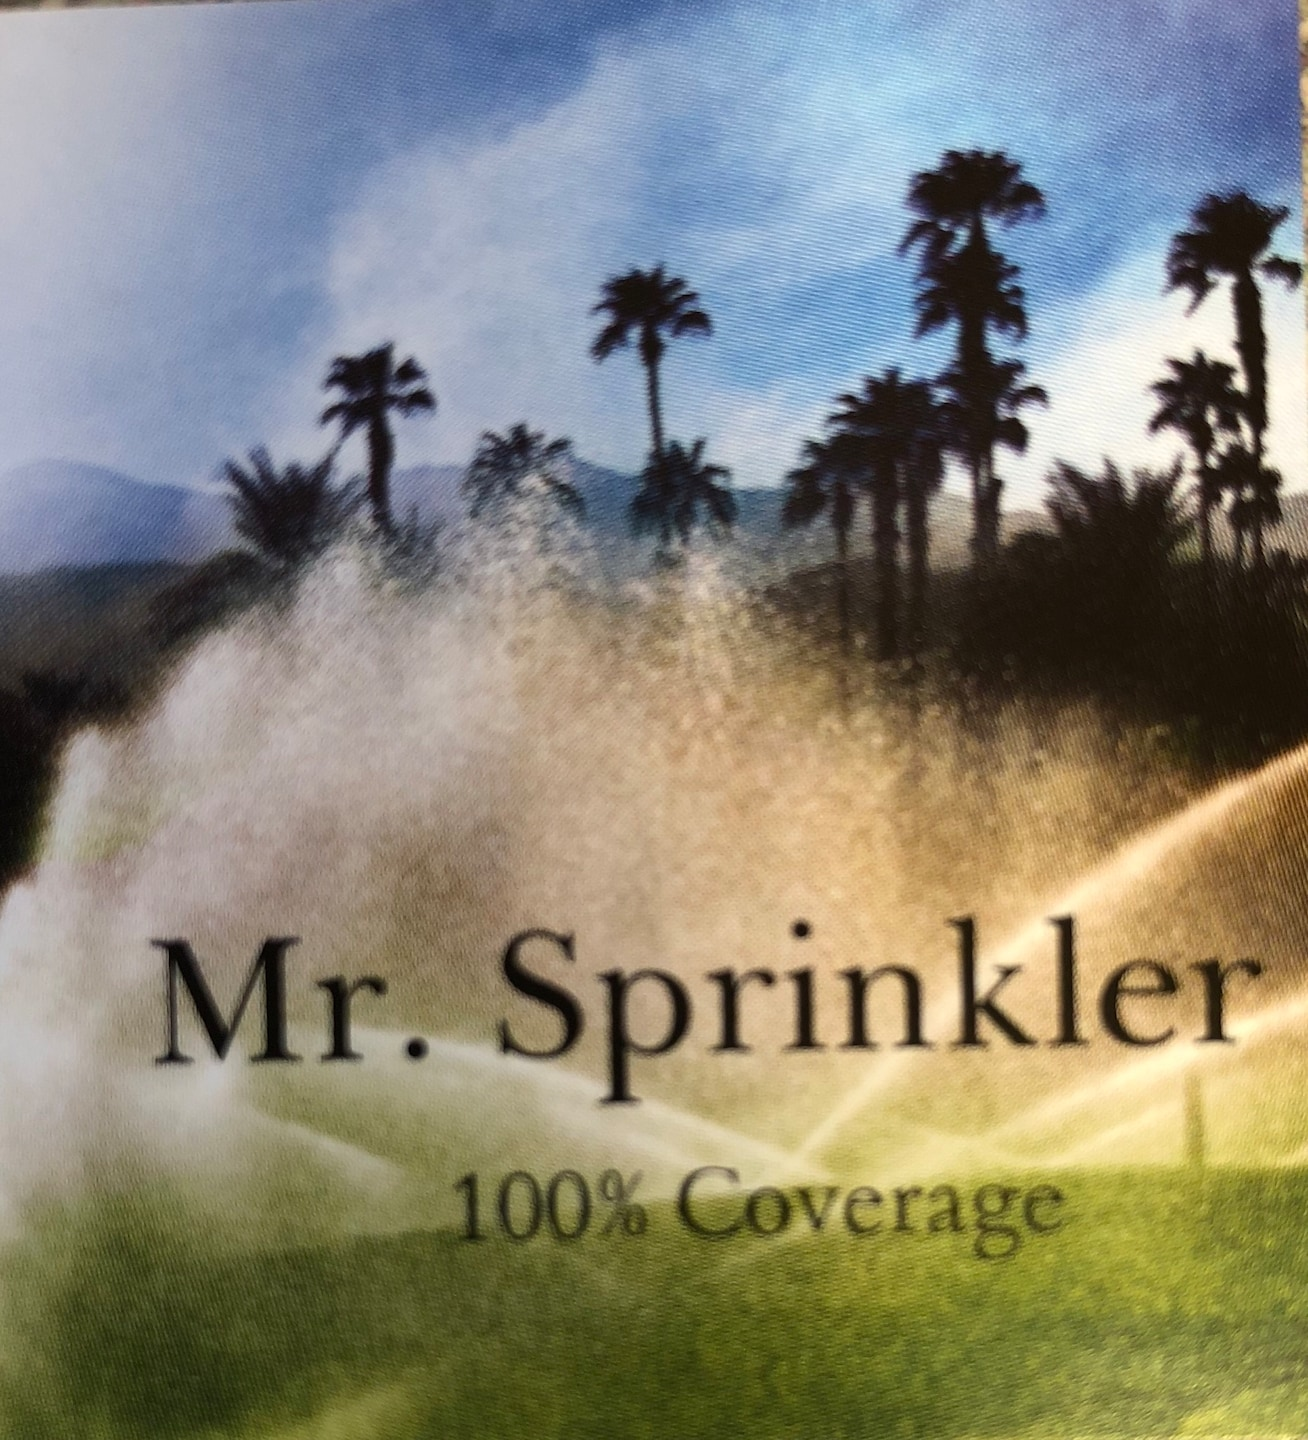 Mr. Sprinkler